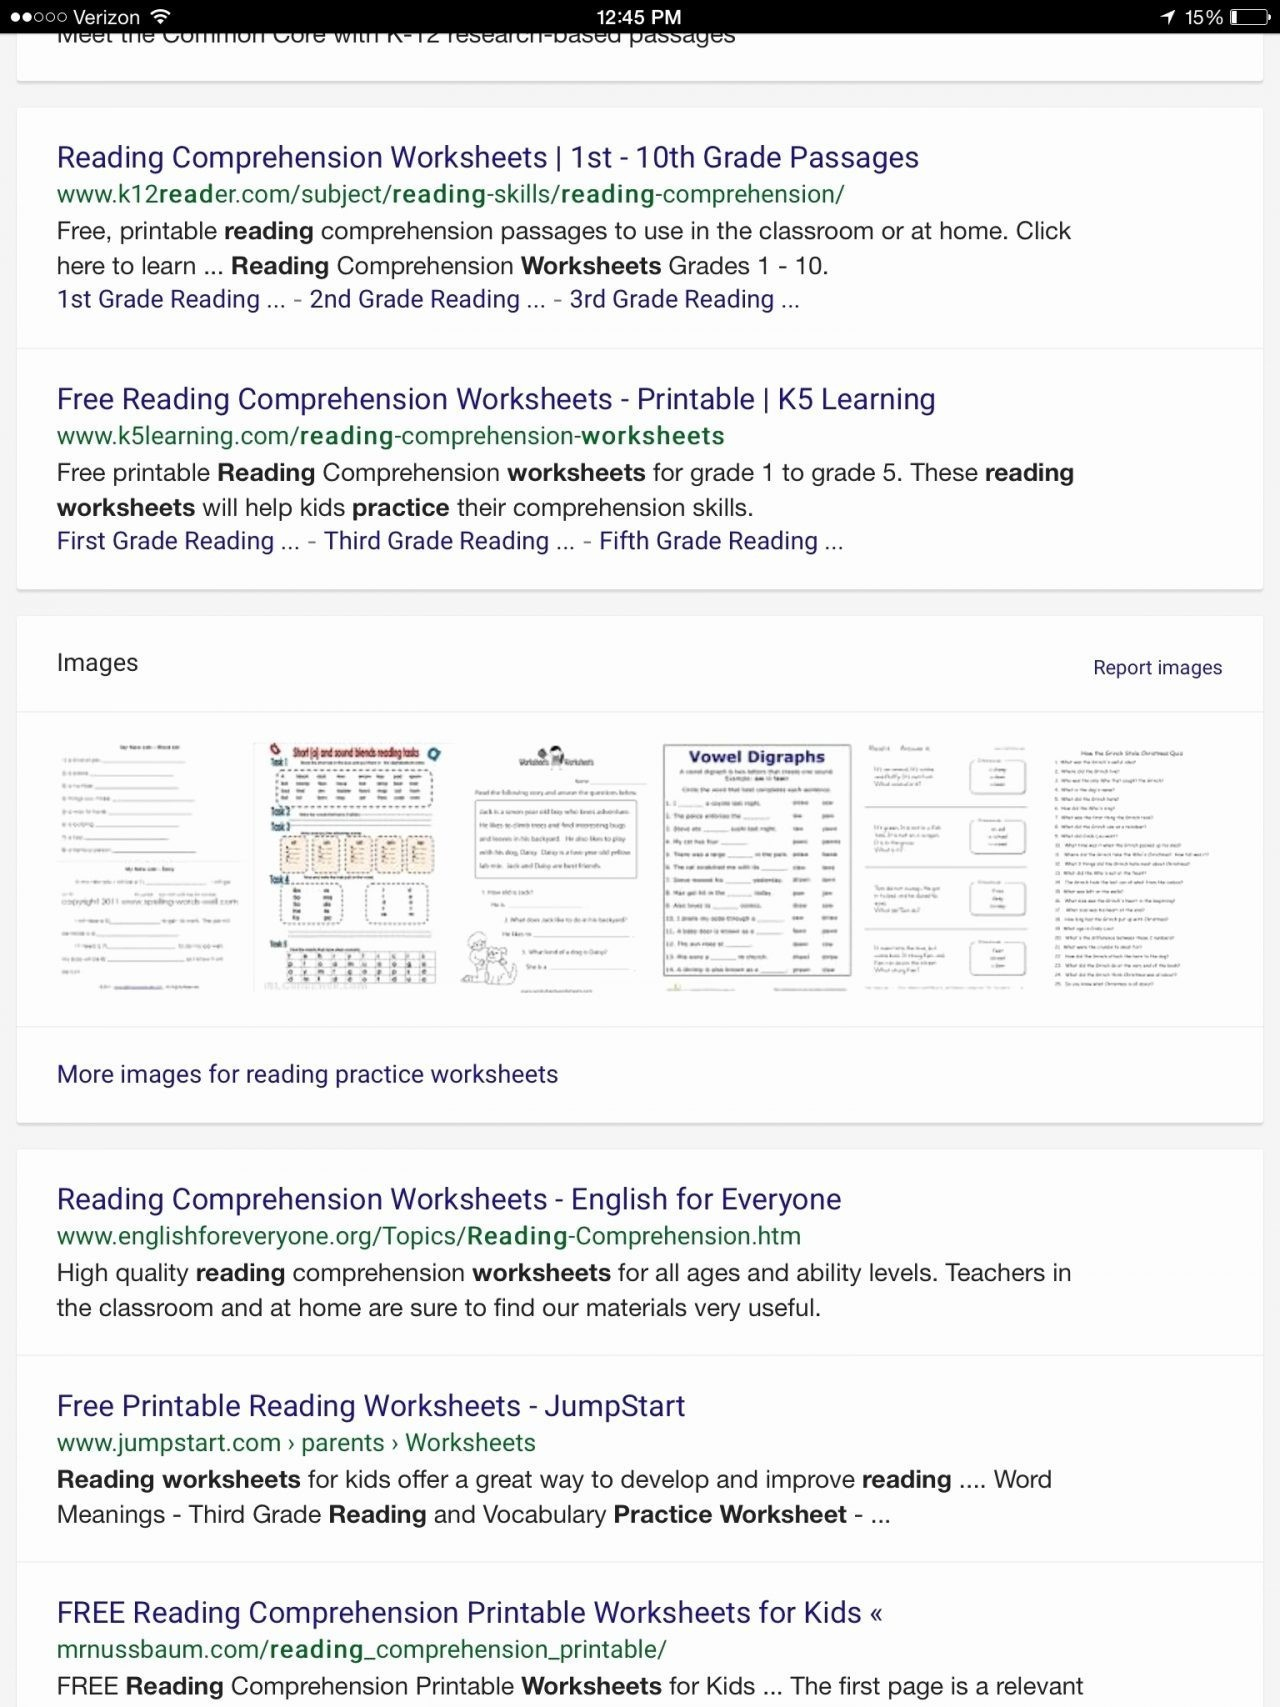 Year 2 Literacy Worksheets - 3Rd Grade Reading Comprehension | Printable Reading Worksheets 4Th Grade